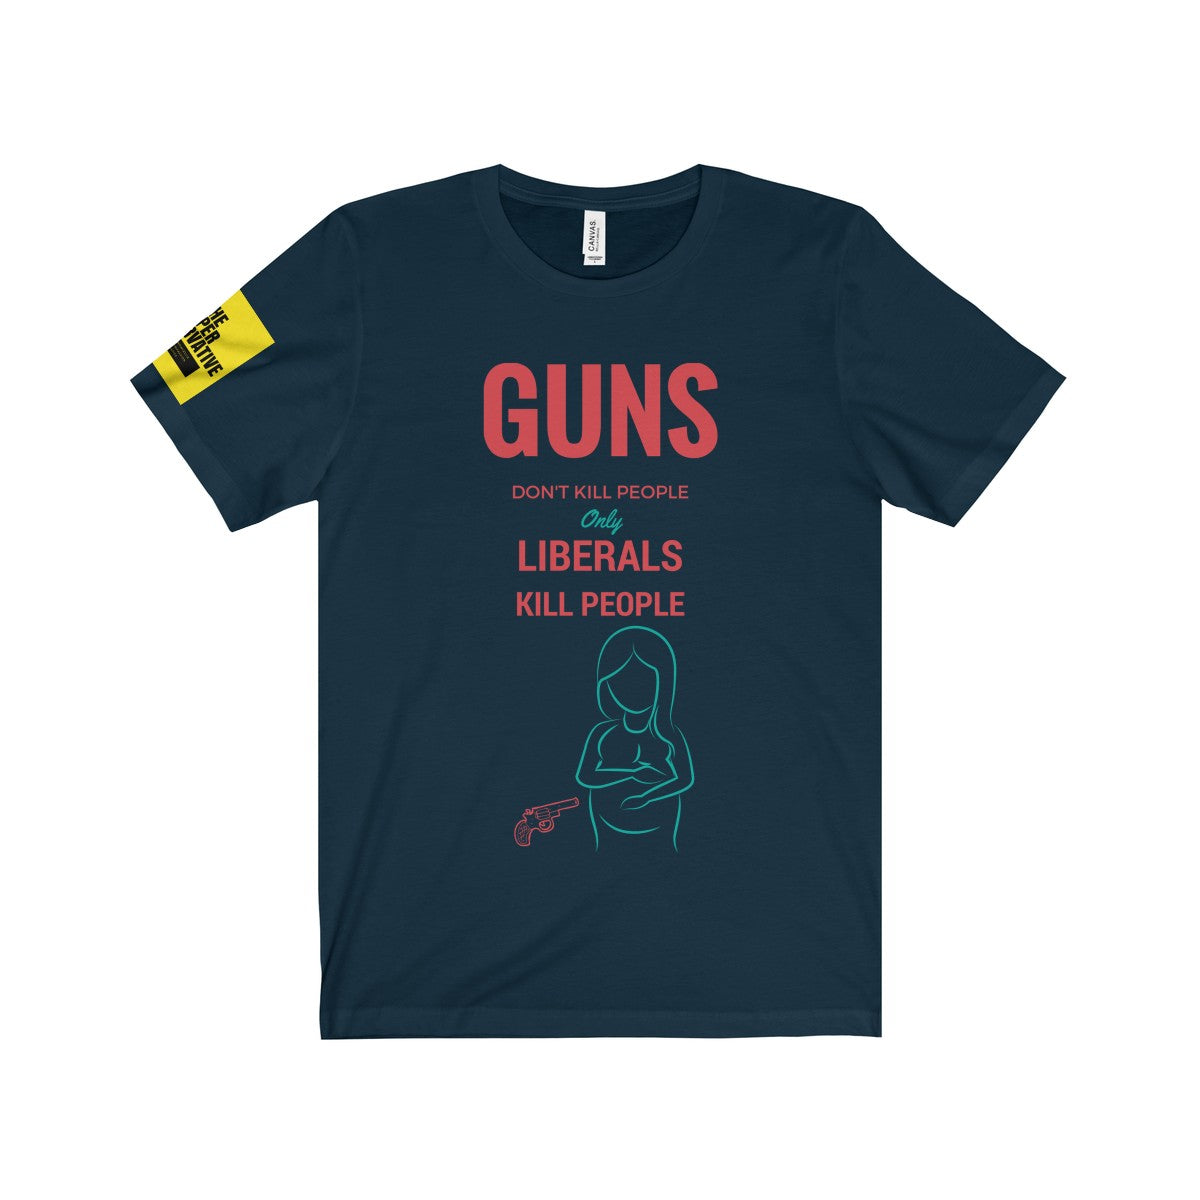 Guns Dont Kill People Shirt - Pro-Life T-Shirt - Unisex